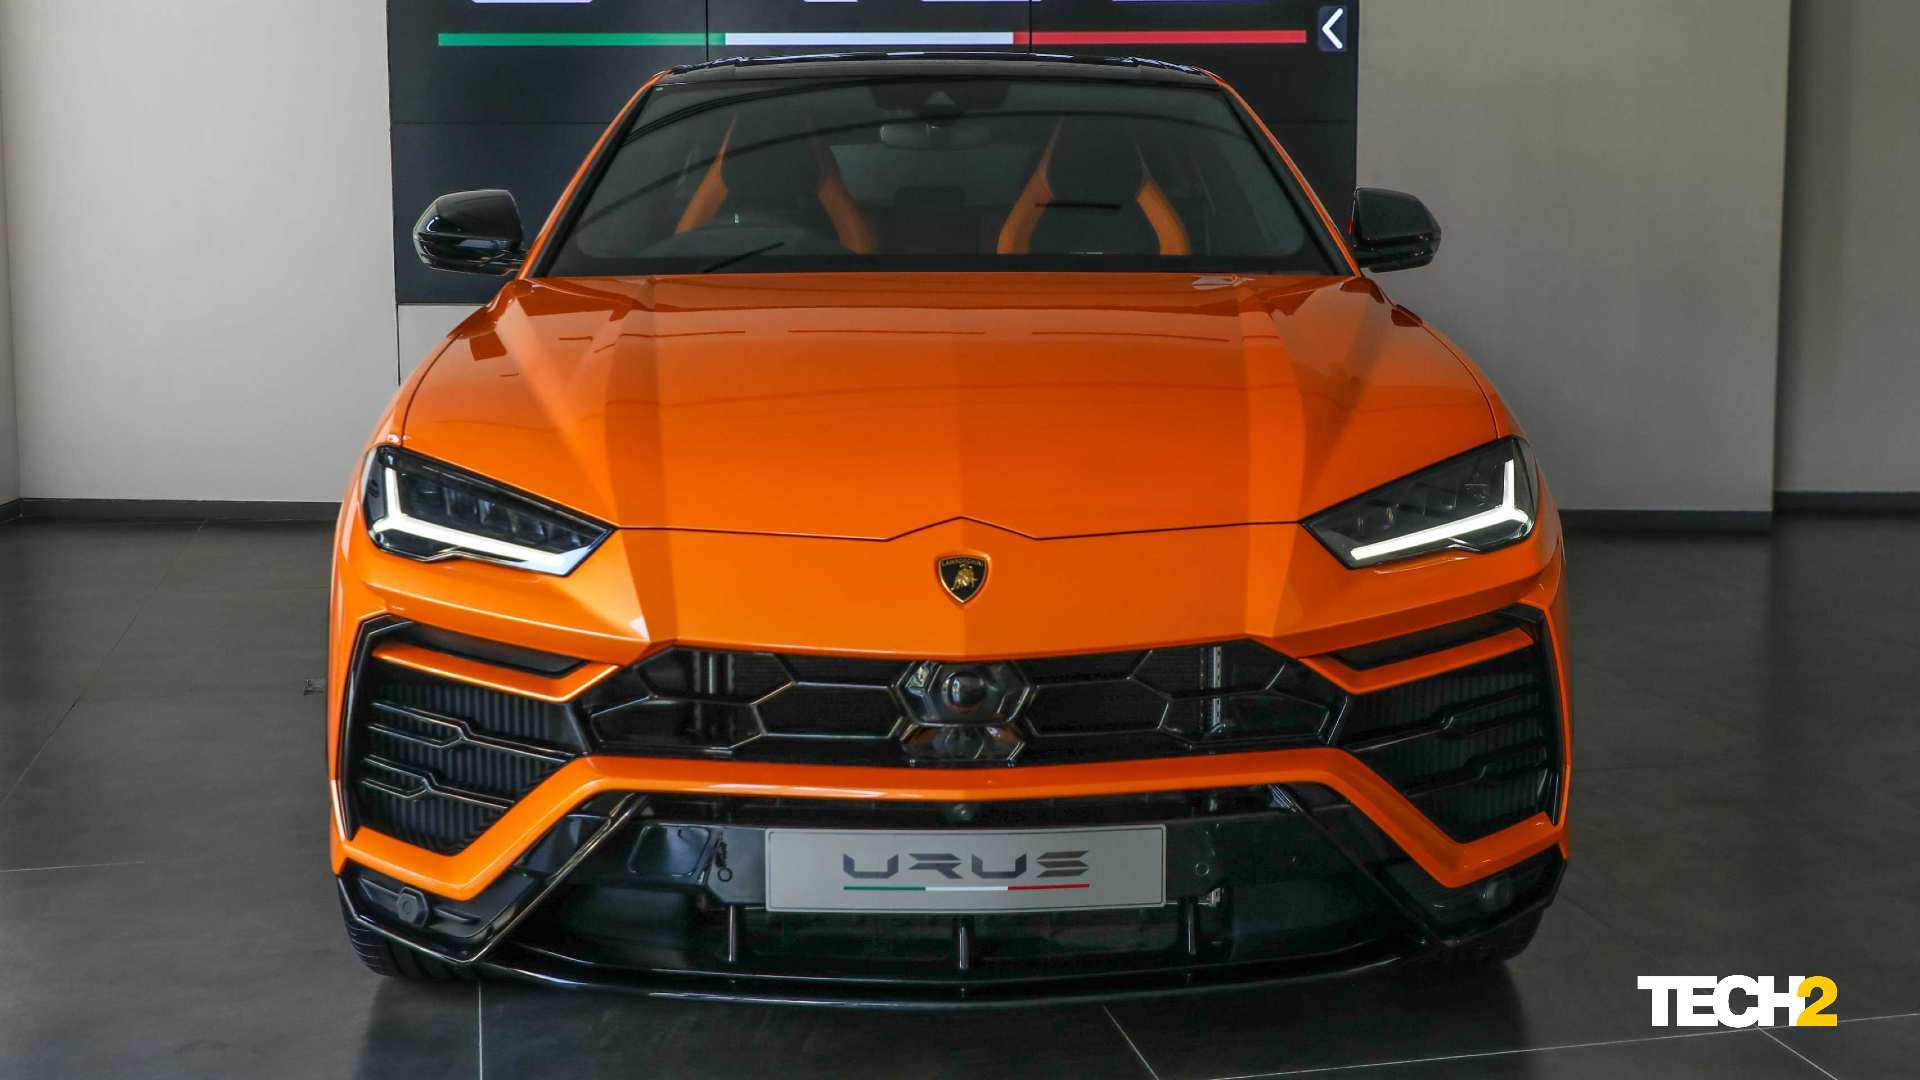 Lamborghini Urus Pearl Capsule Edition launched in India at Rs 3.43 crore- Technology News, Gadgetclock